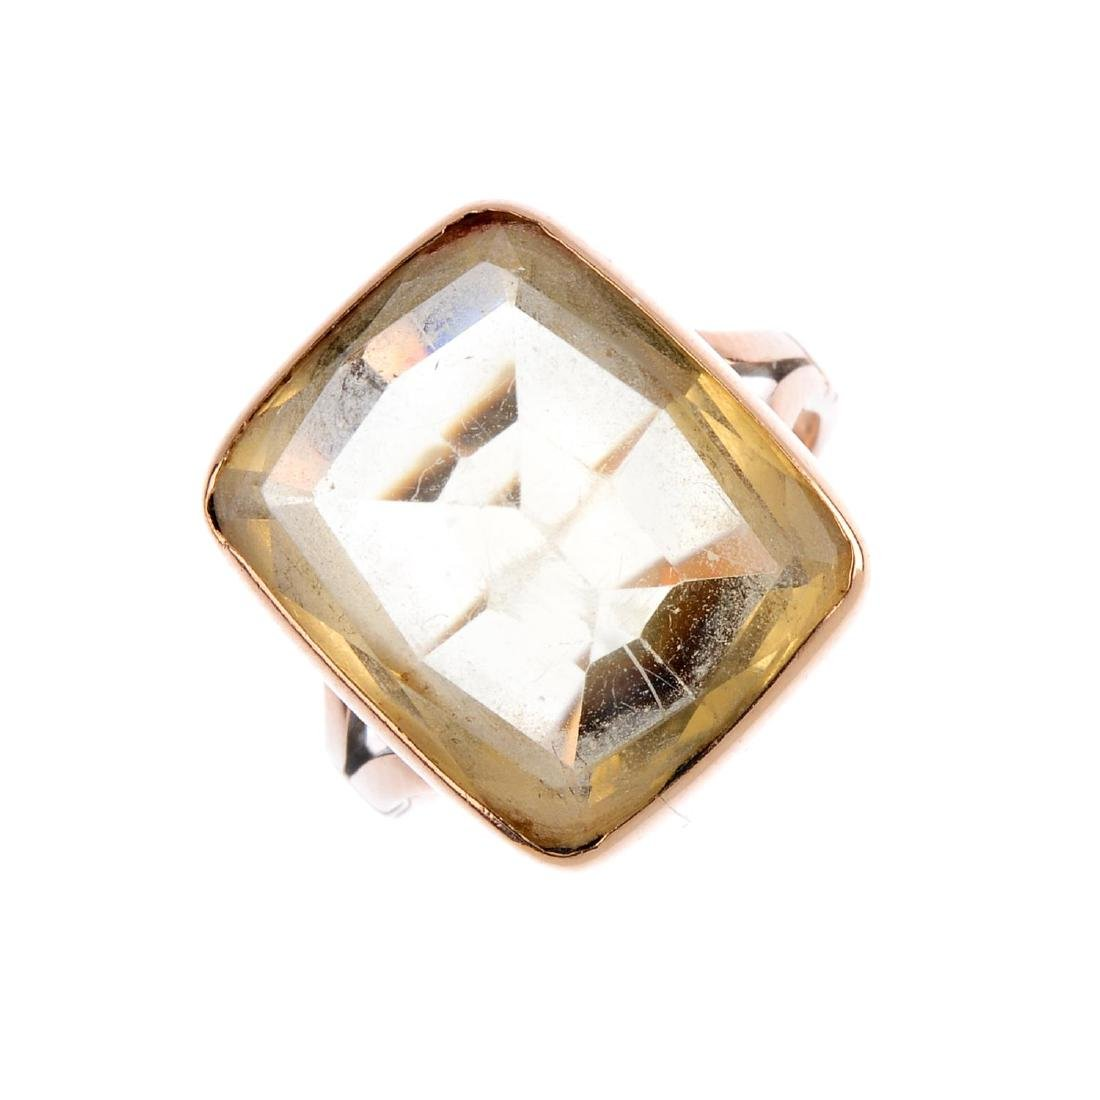 Two pairs of 9ct gold earrings and a citrine ring. To